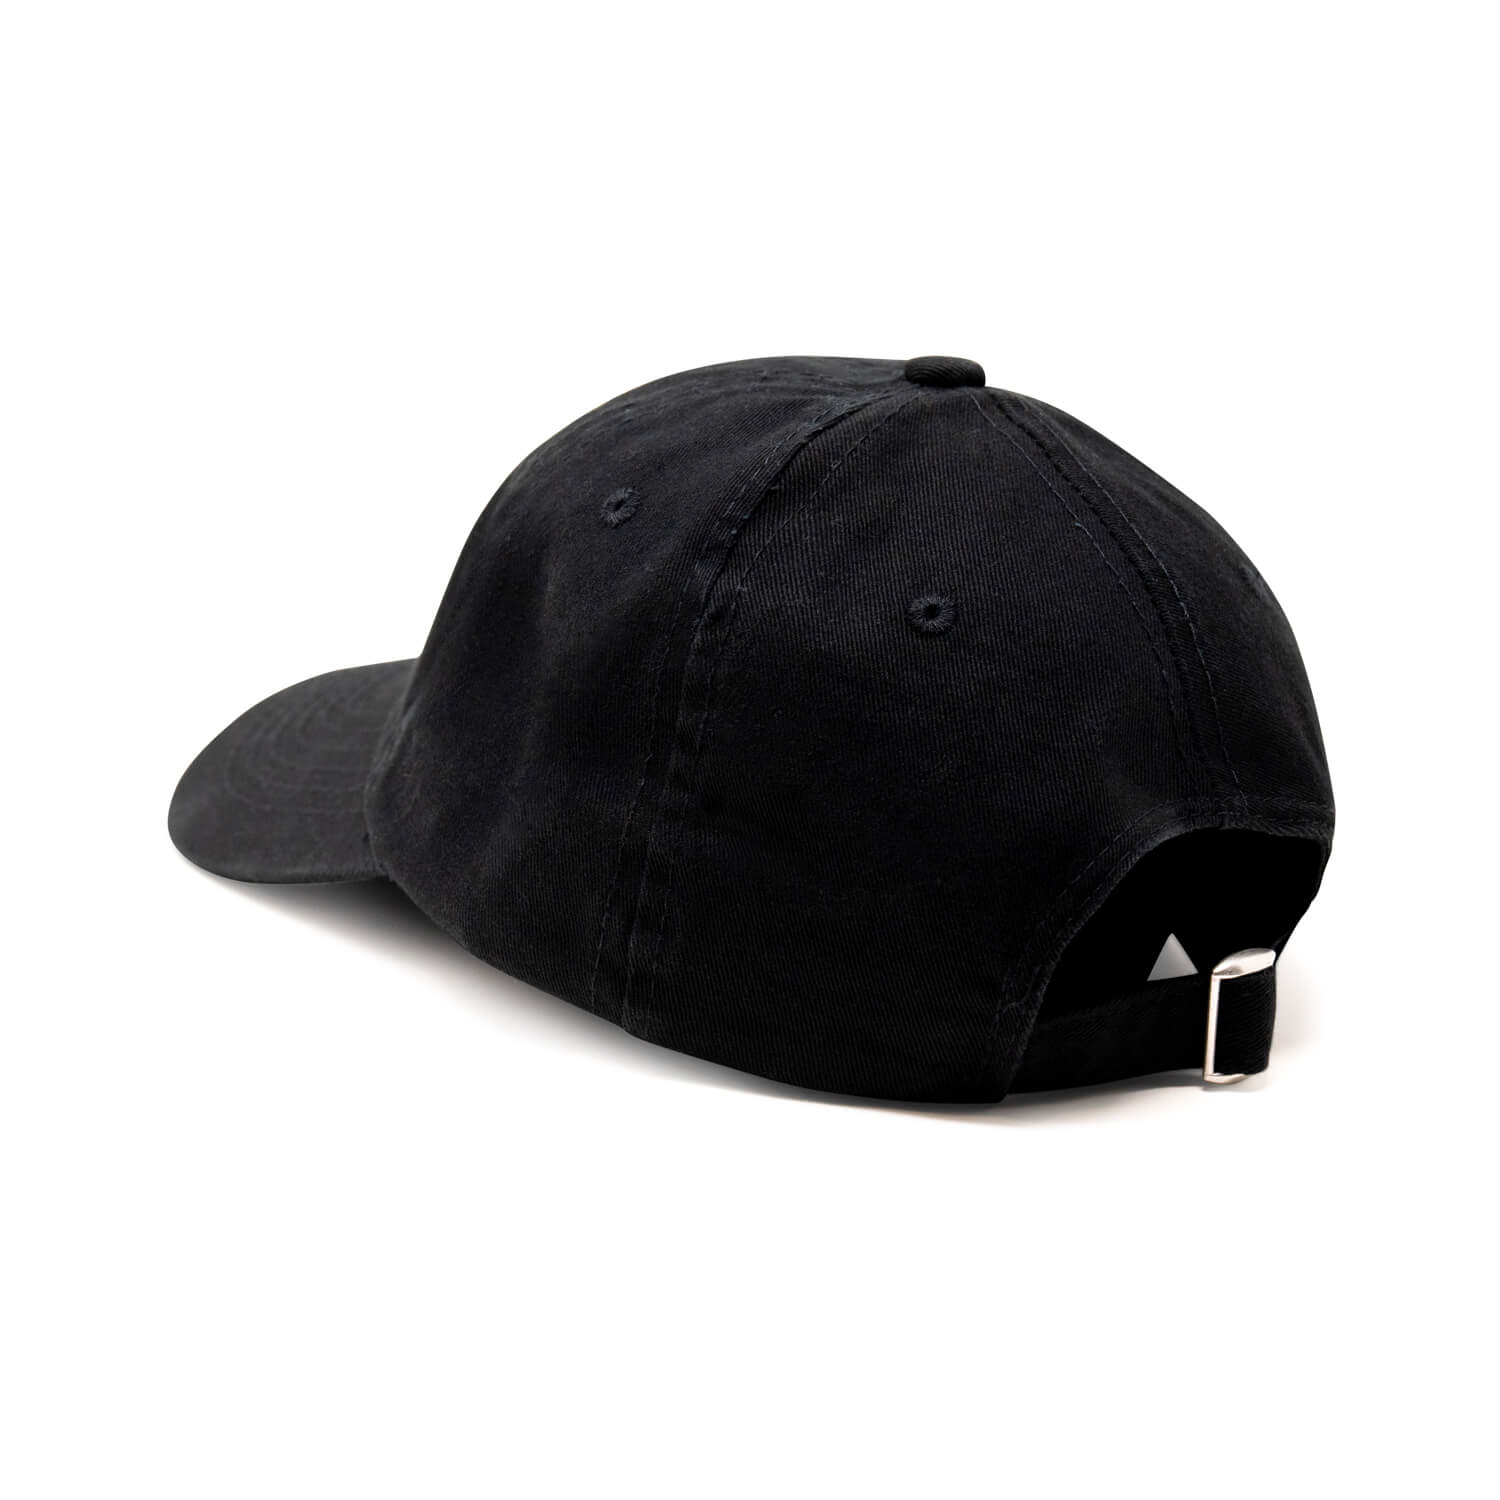 Pizza Toni x Ciele Cap (Black)